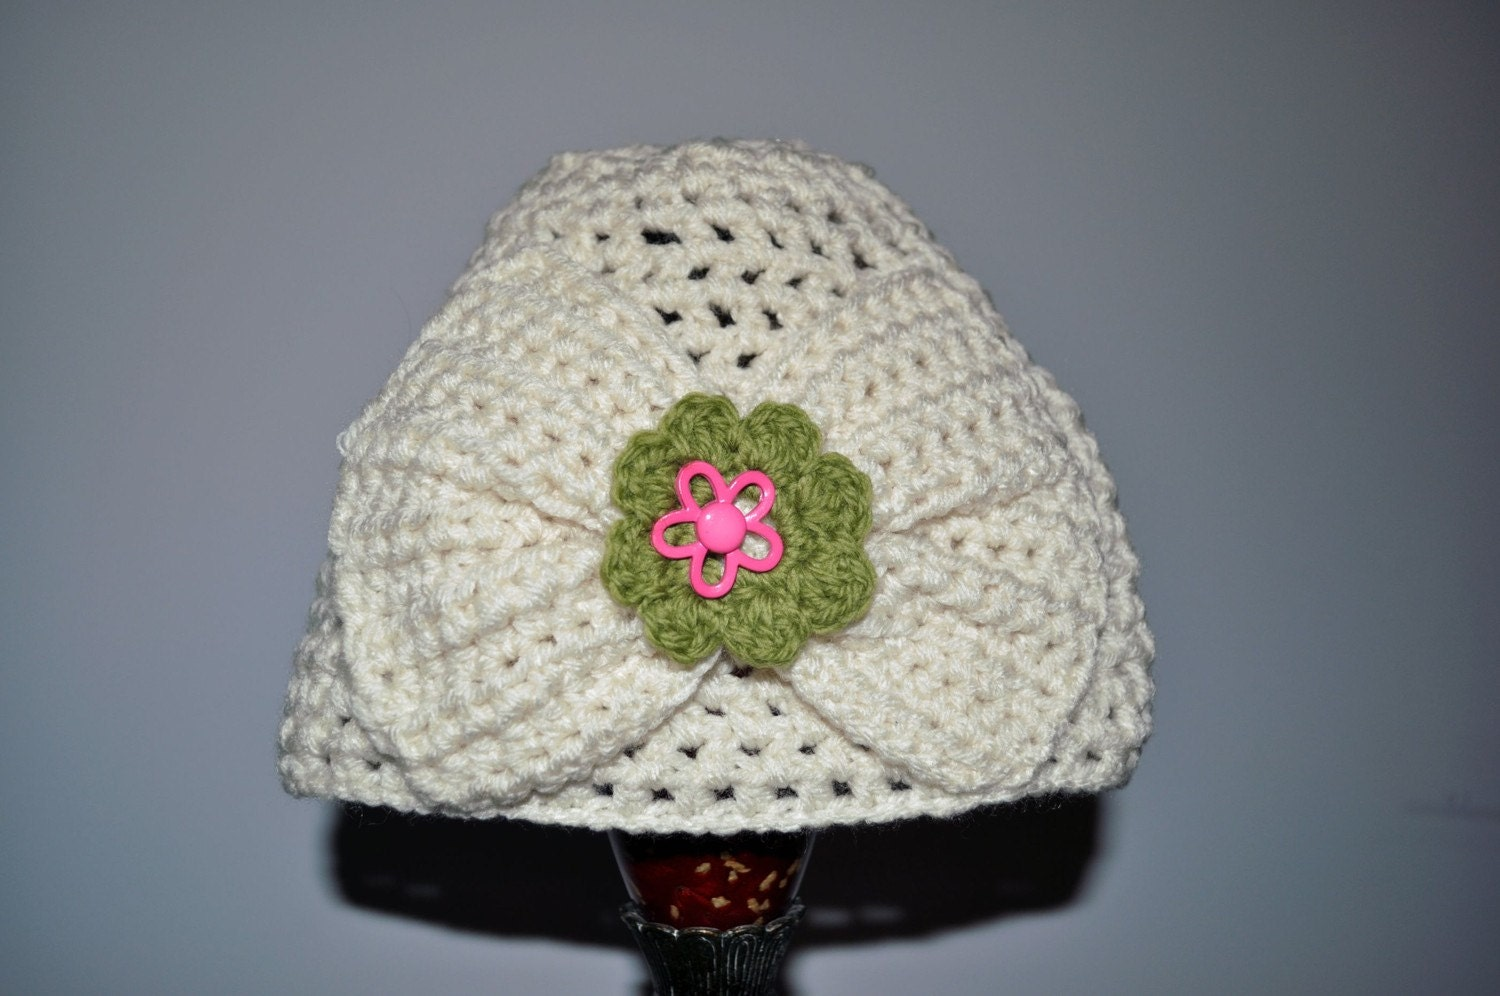 Cute hat for toddler's